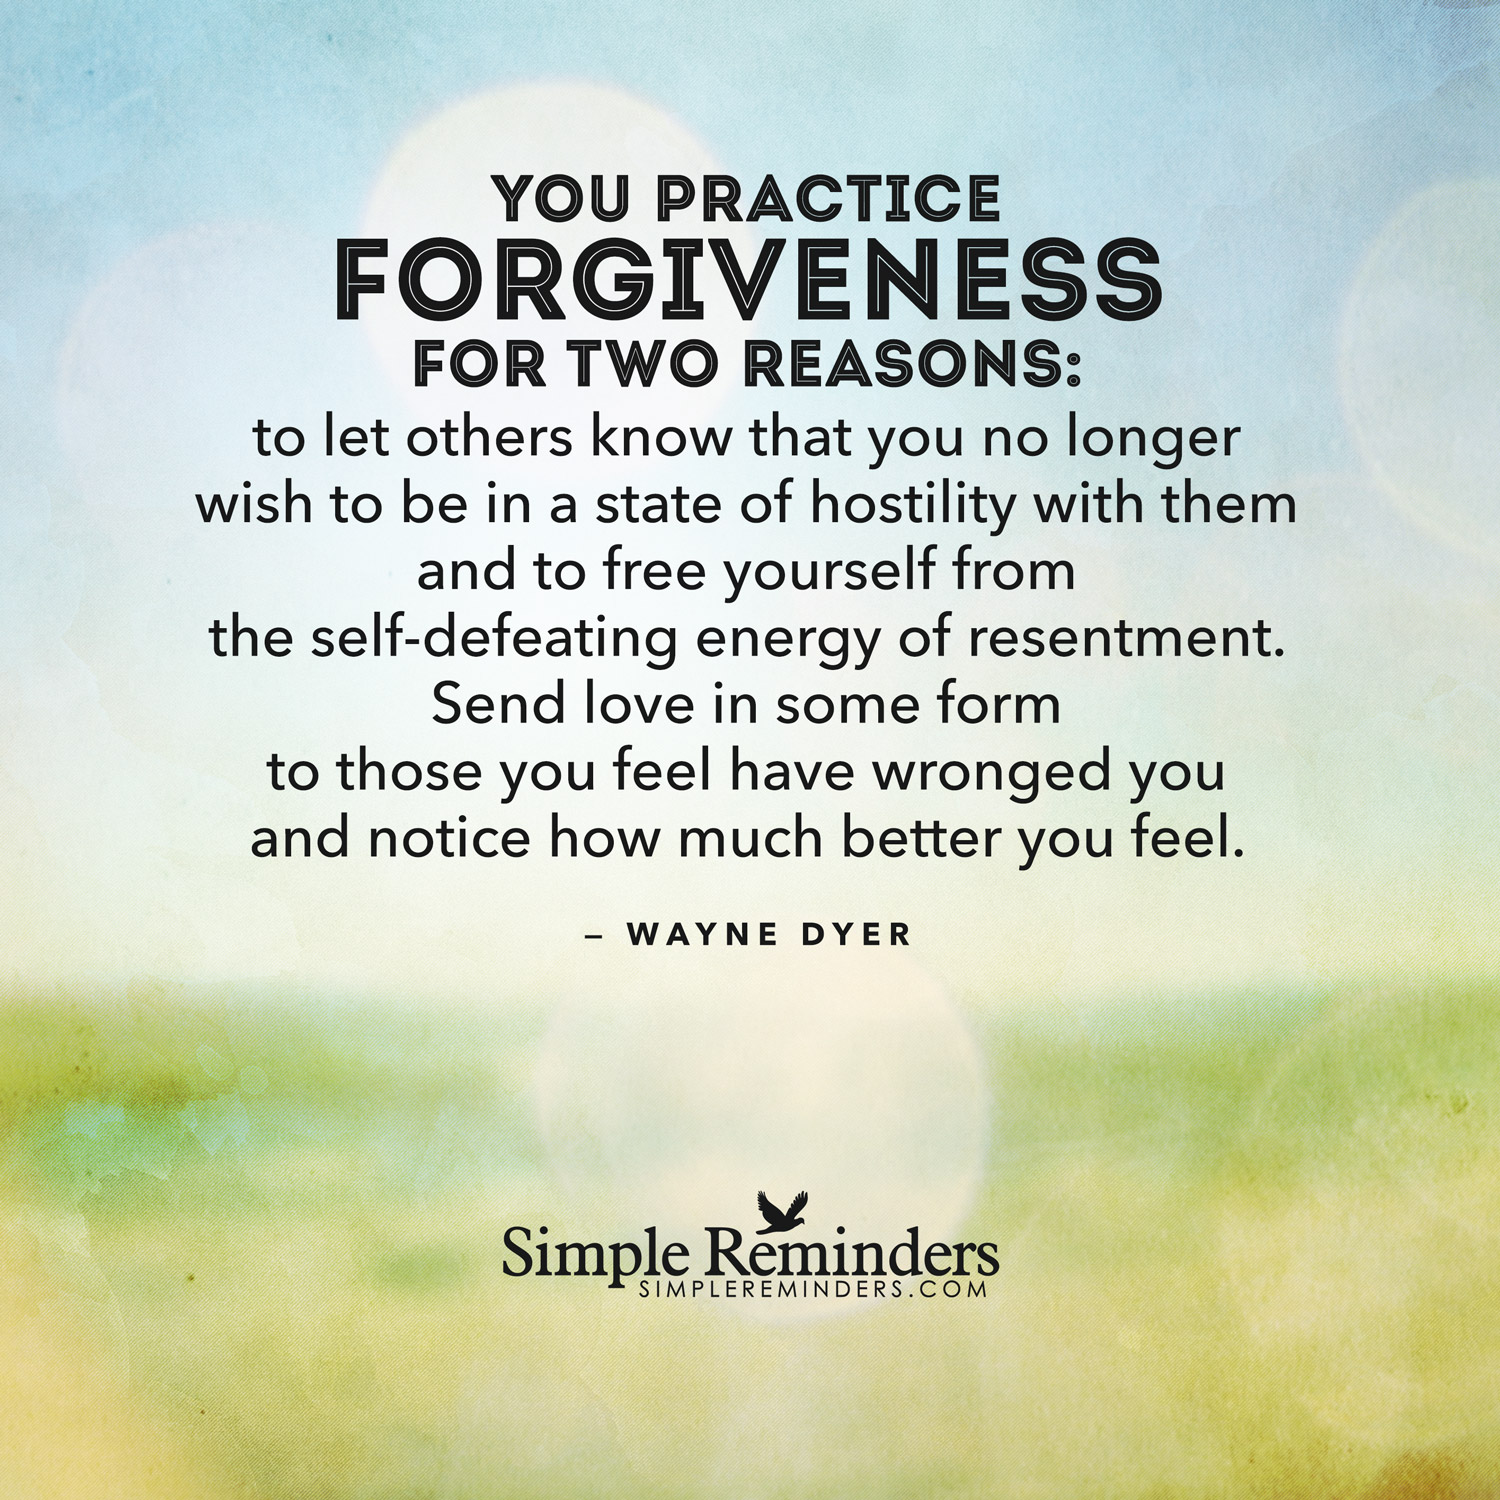 Forgiveness By Wayne Dyer Quotes. QuotesGram